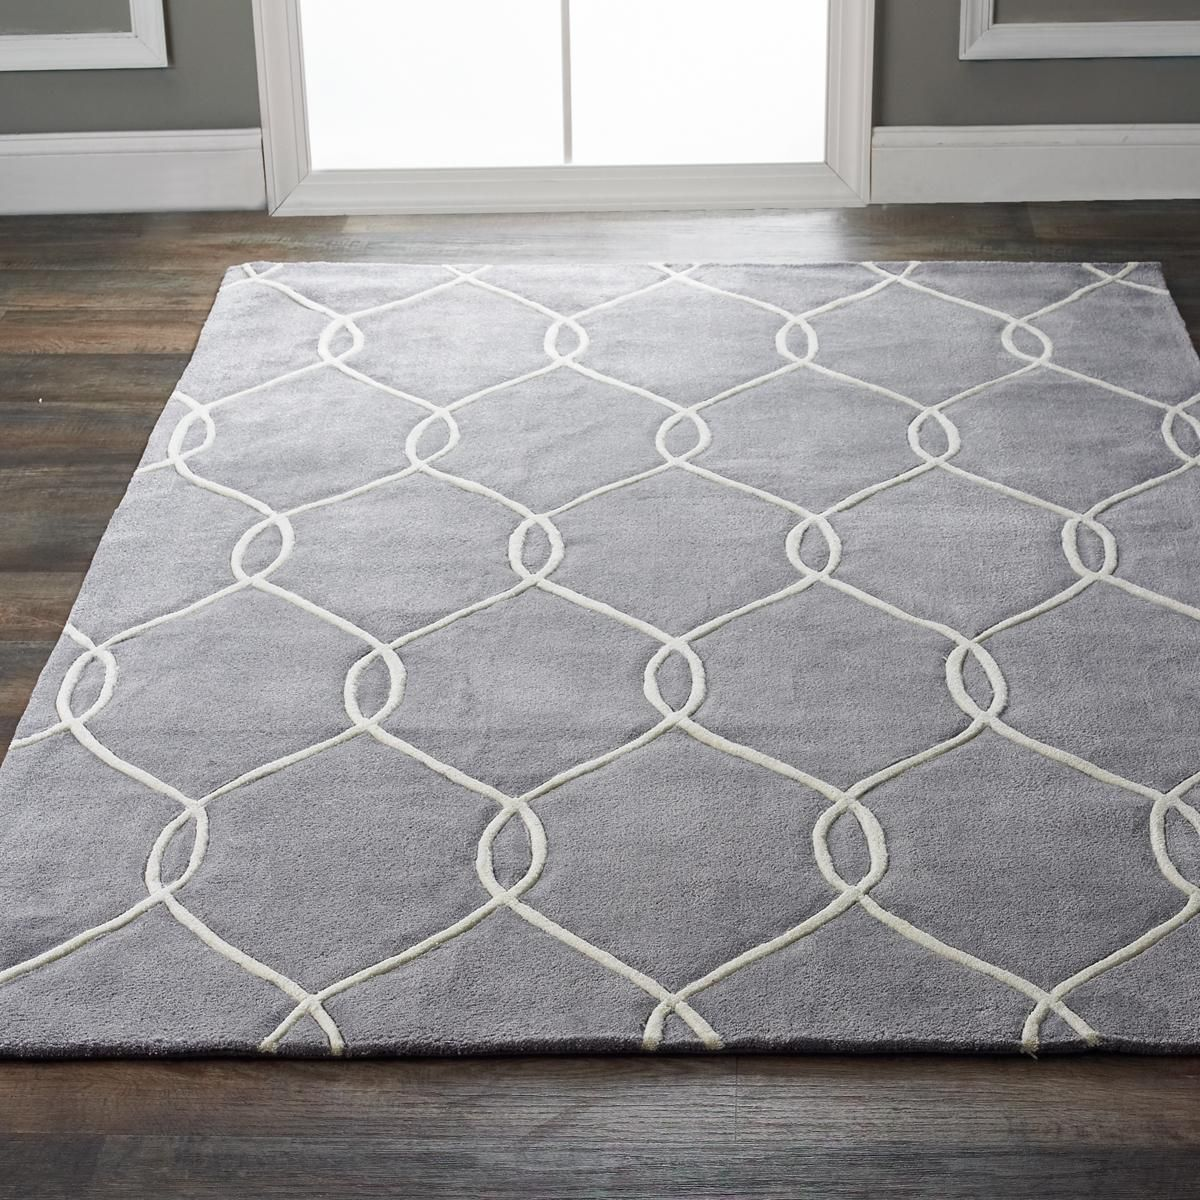 Plush Interlocking Trellis Rug Saturated Color And Chic Geometric Pattern  Make A Bold Statement At An